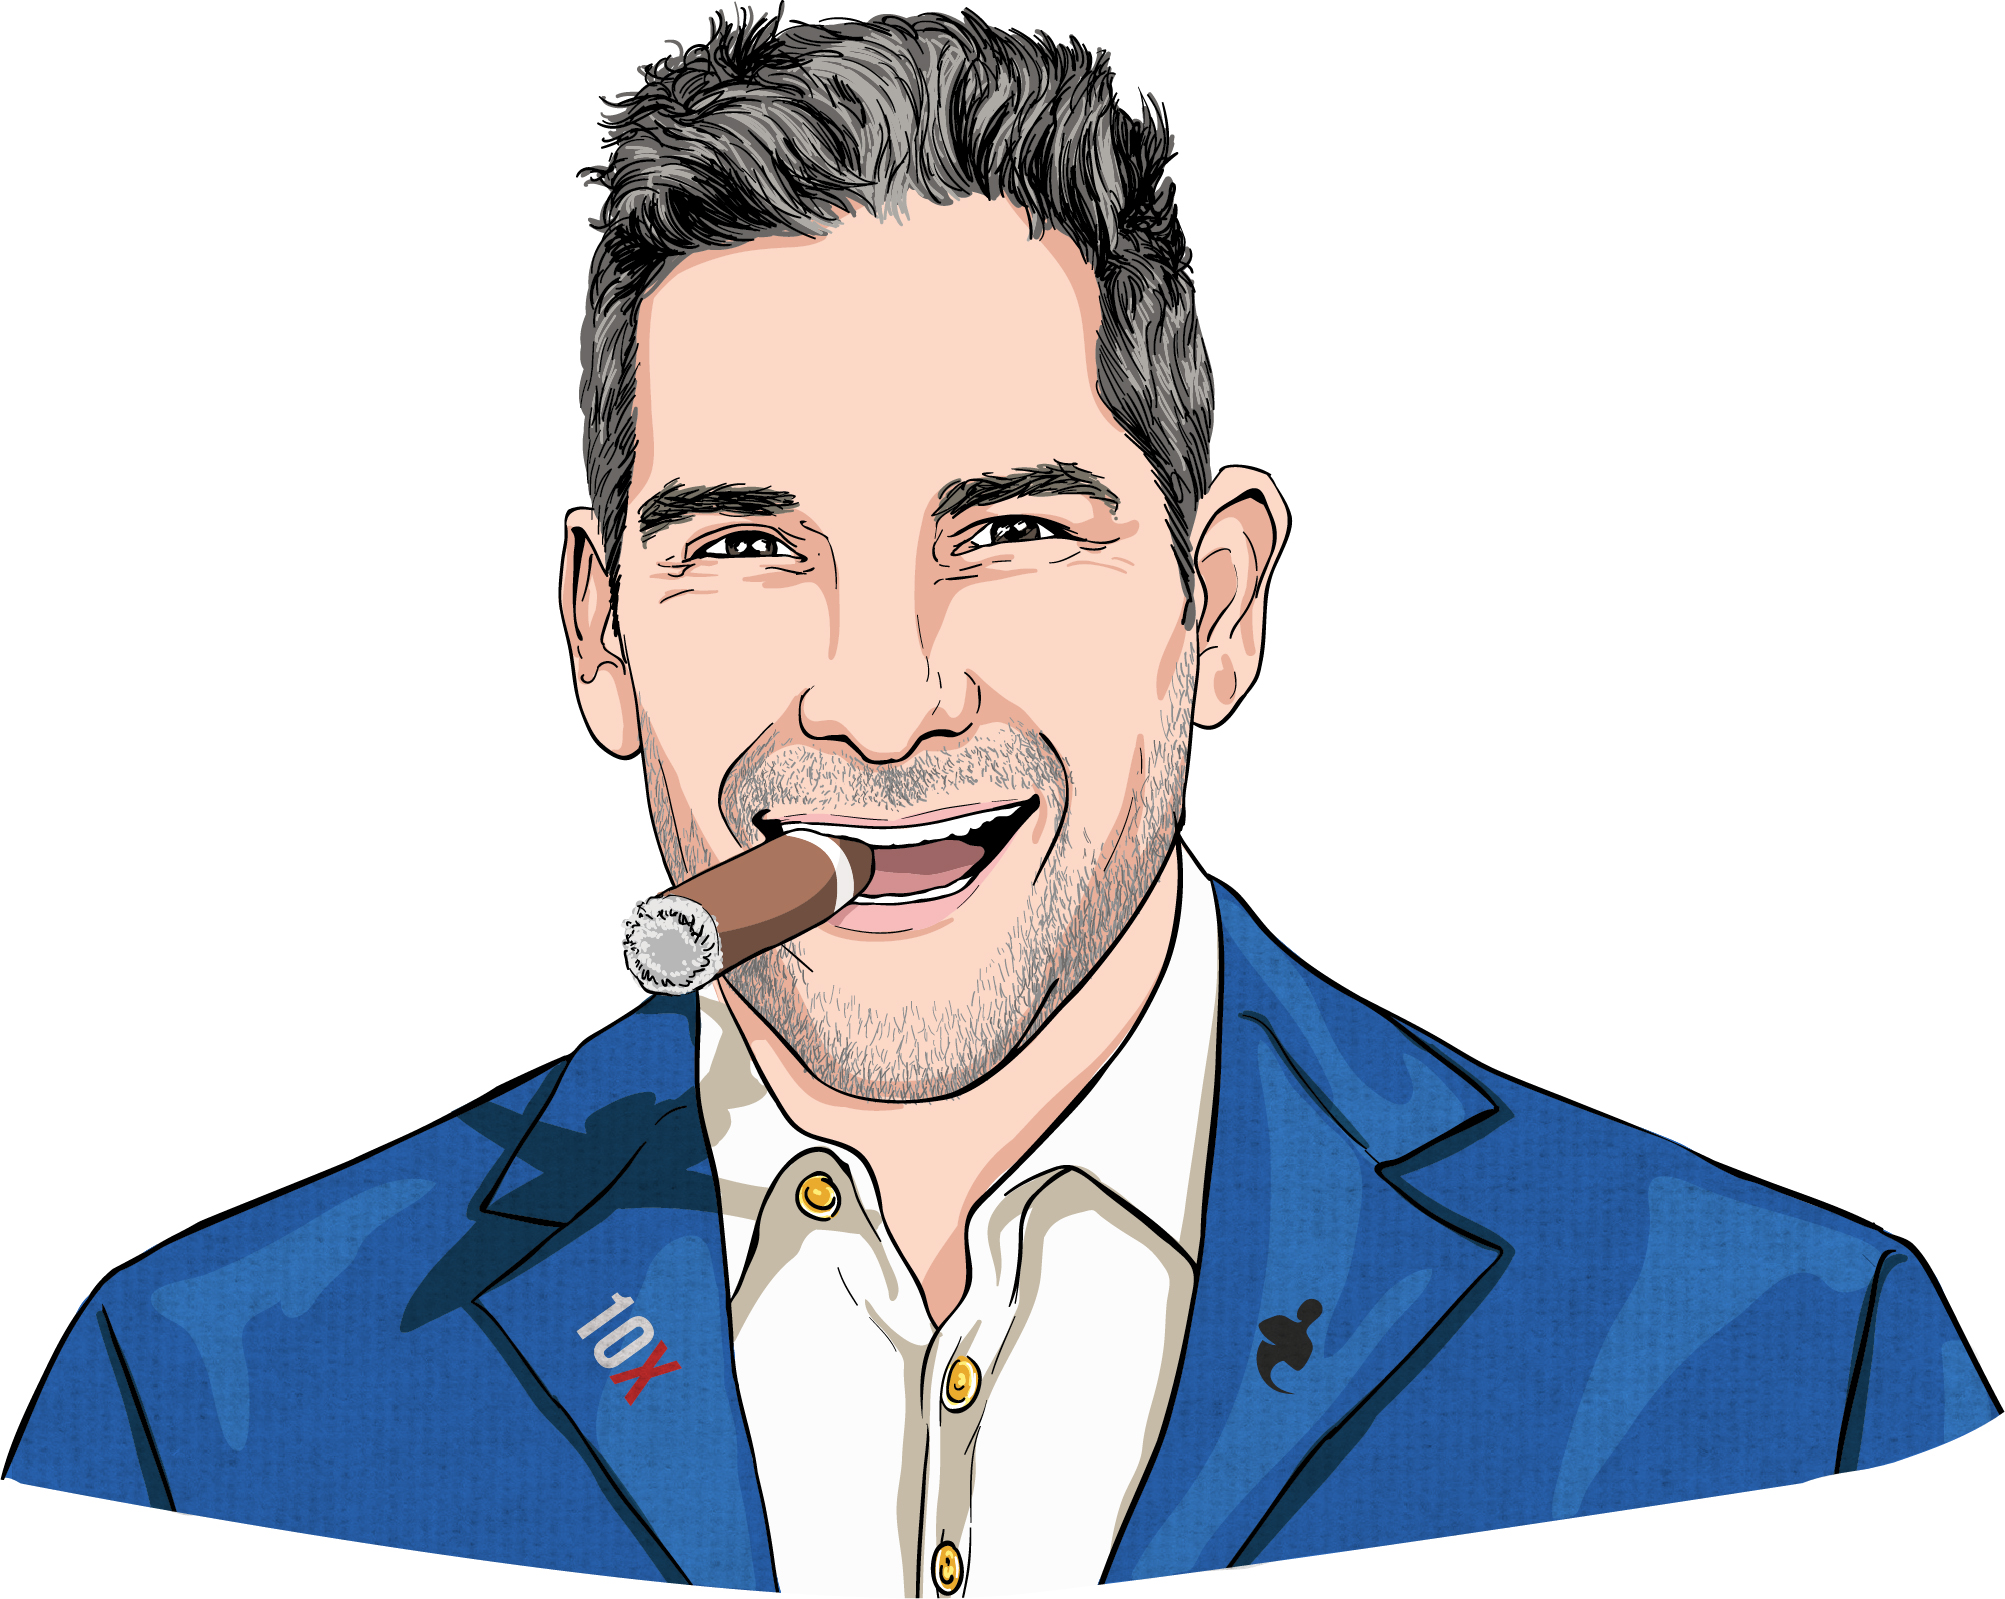 Grant Cardone Portrait with Cigar in Mouth